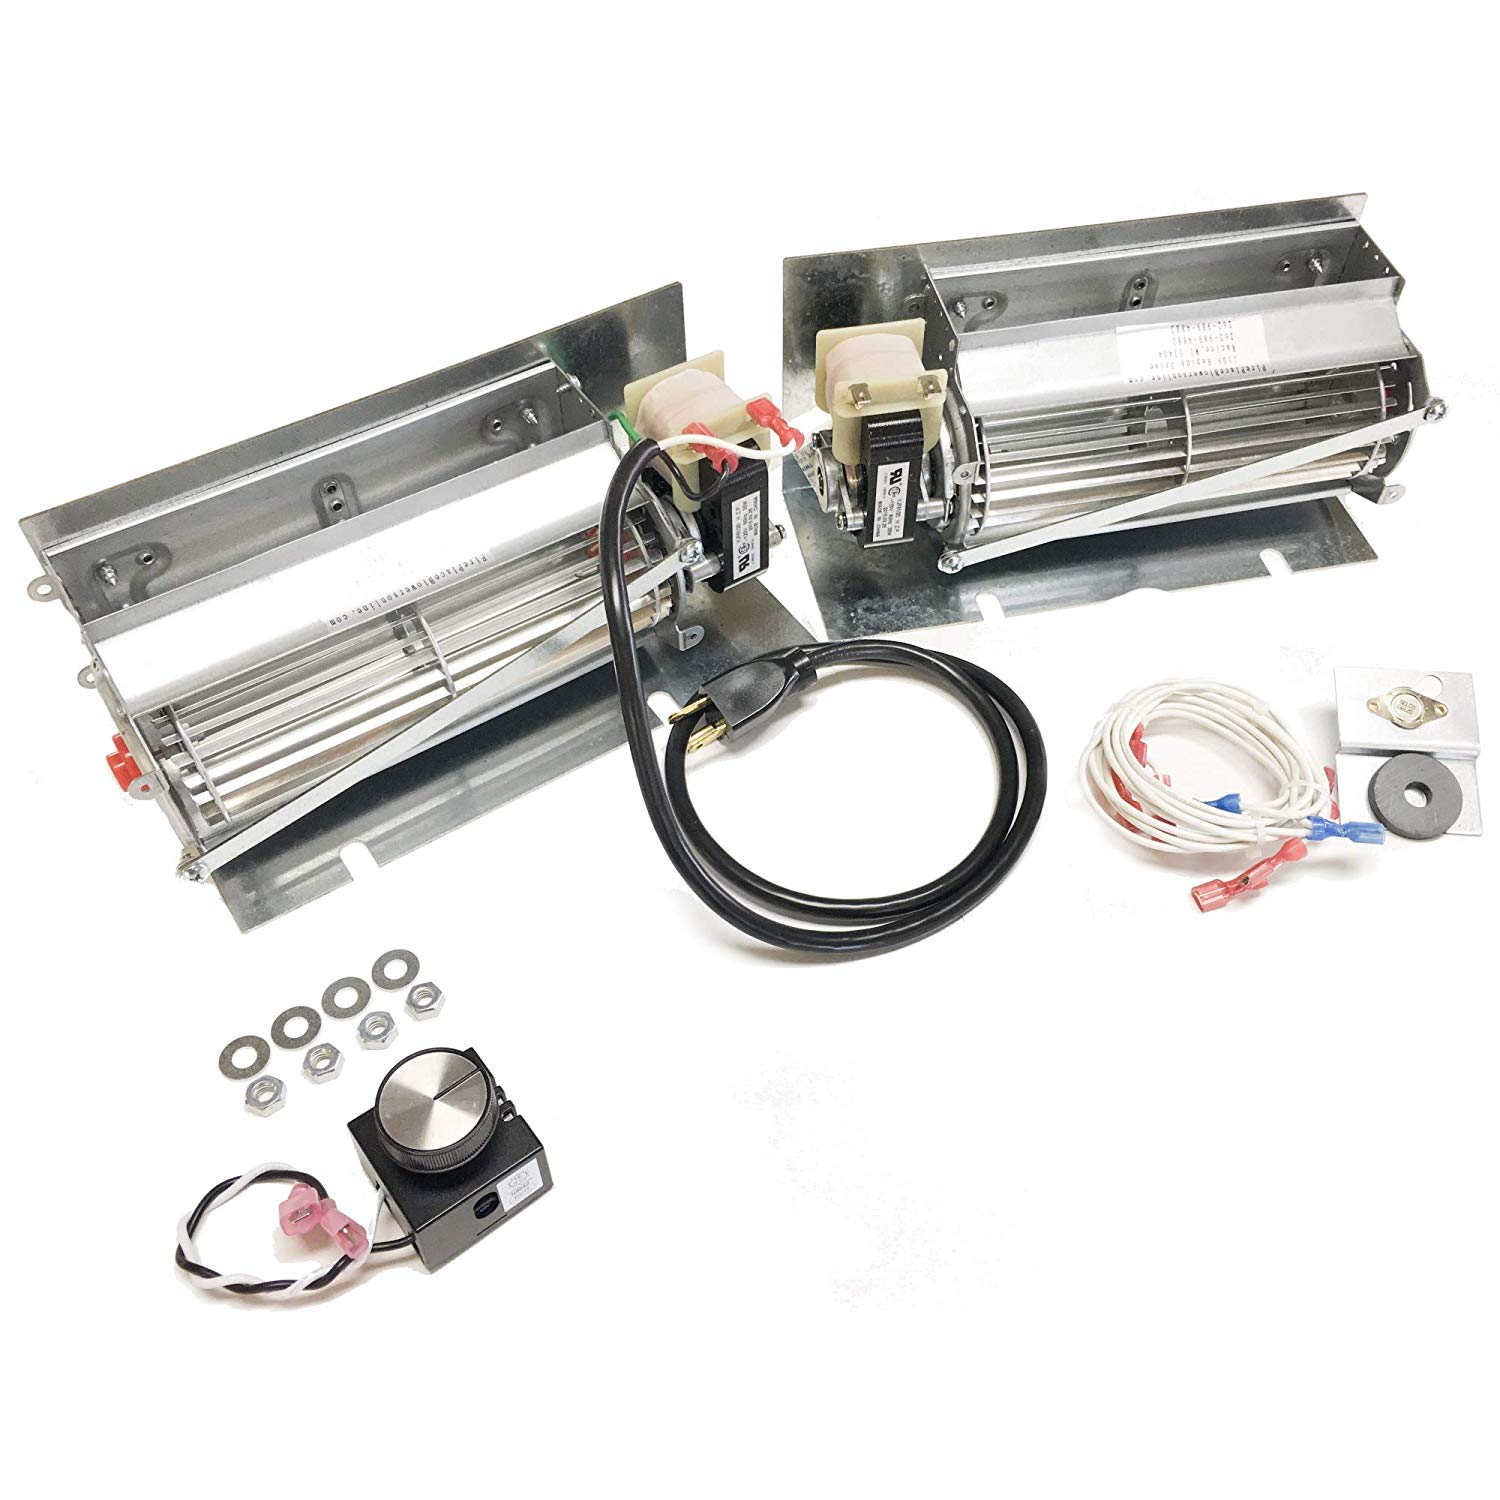 Fireplace Blower Motor Replacement Unique Fireplaceblowers Line 600 1 Fireplace Blower Fan Kit for Kozy Heat Rotom Hb Rb6001